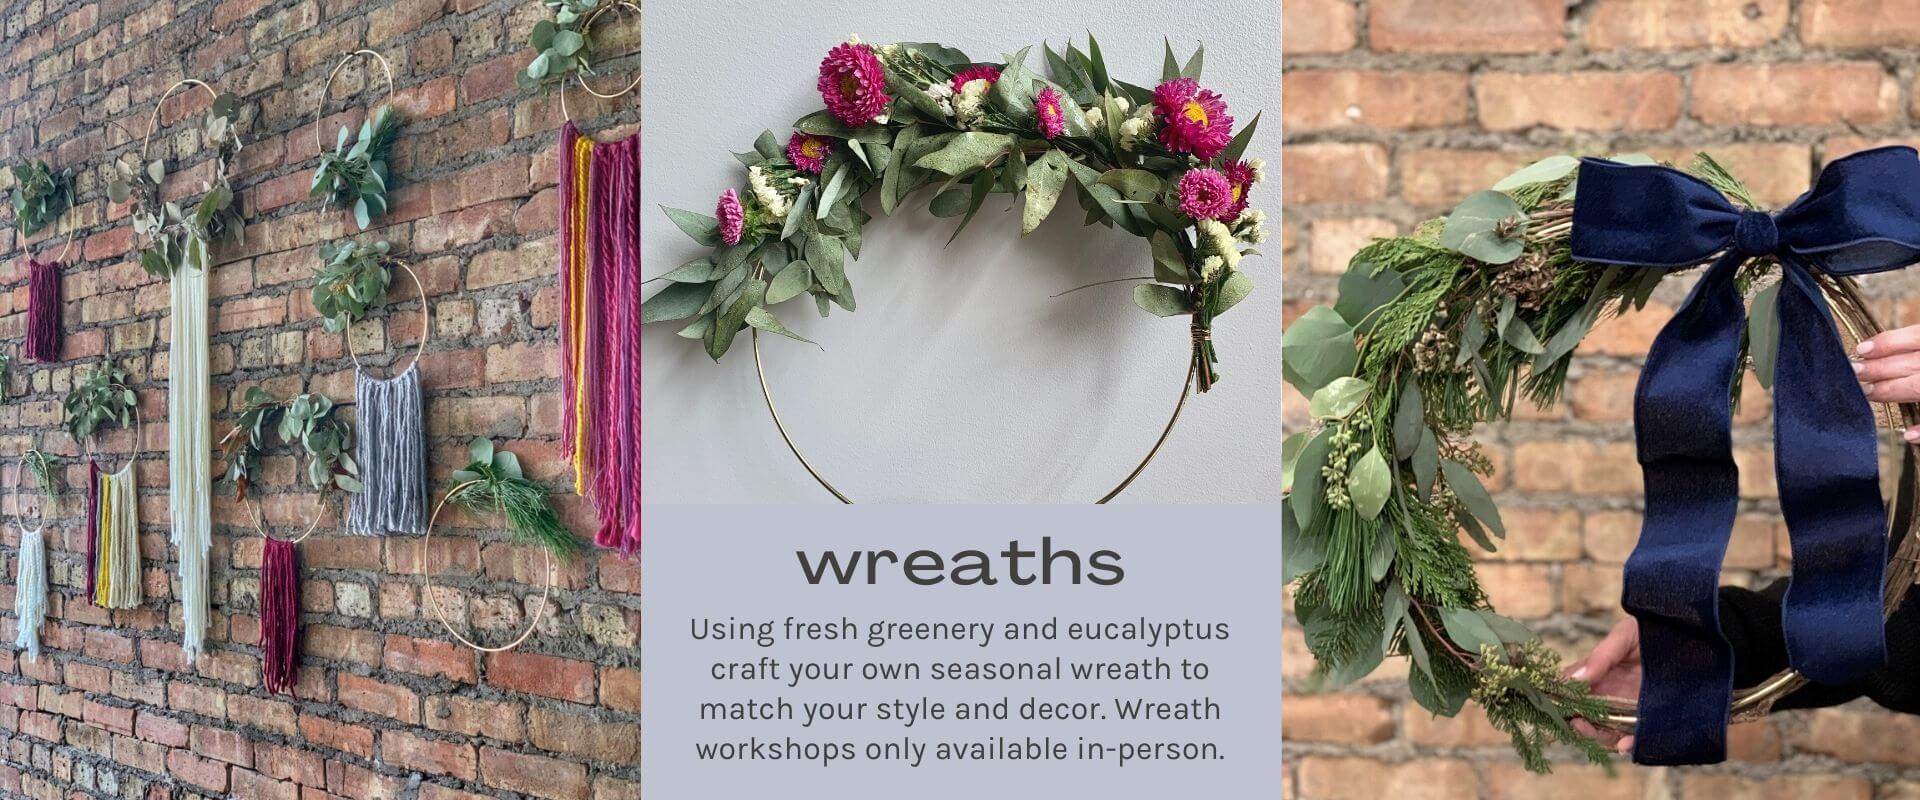 text-wreaths image-greenery and eucalyptus on brass rings and brick wall background